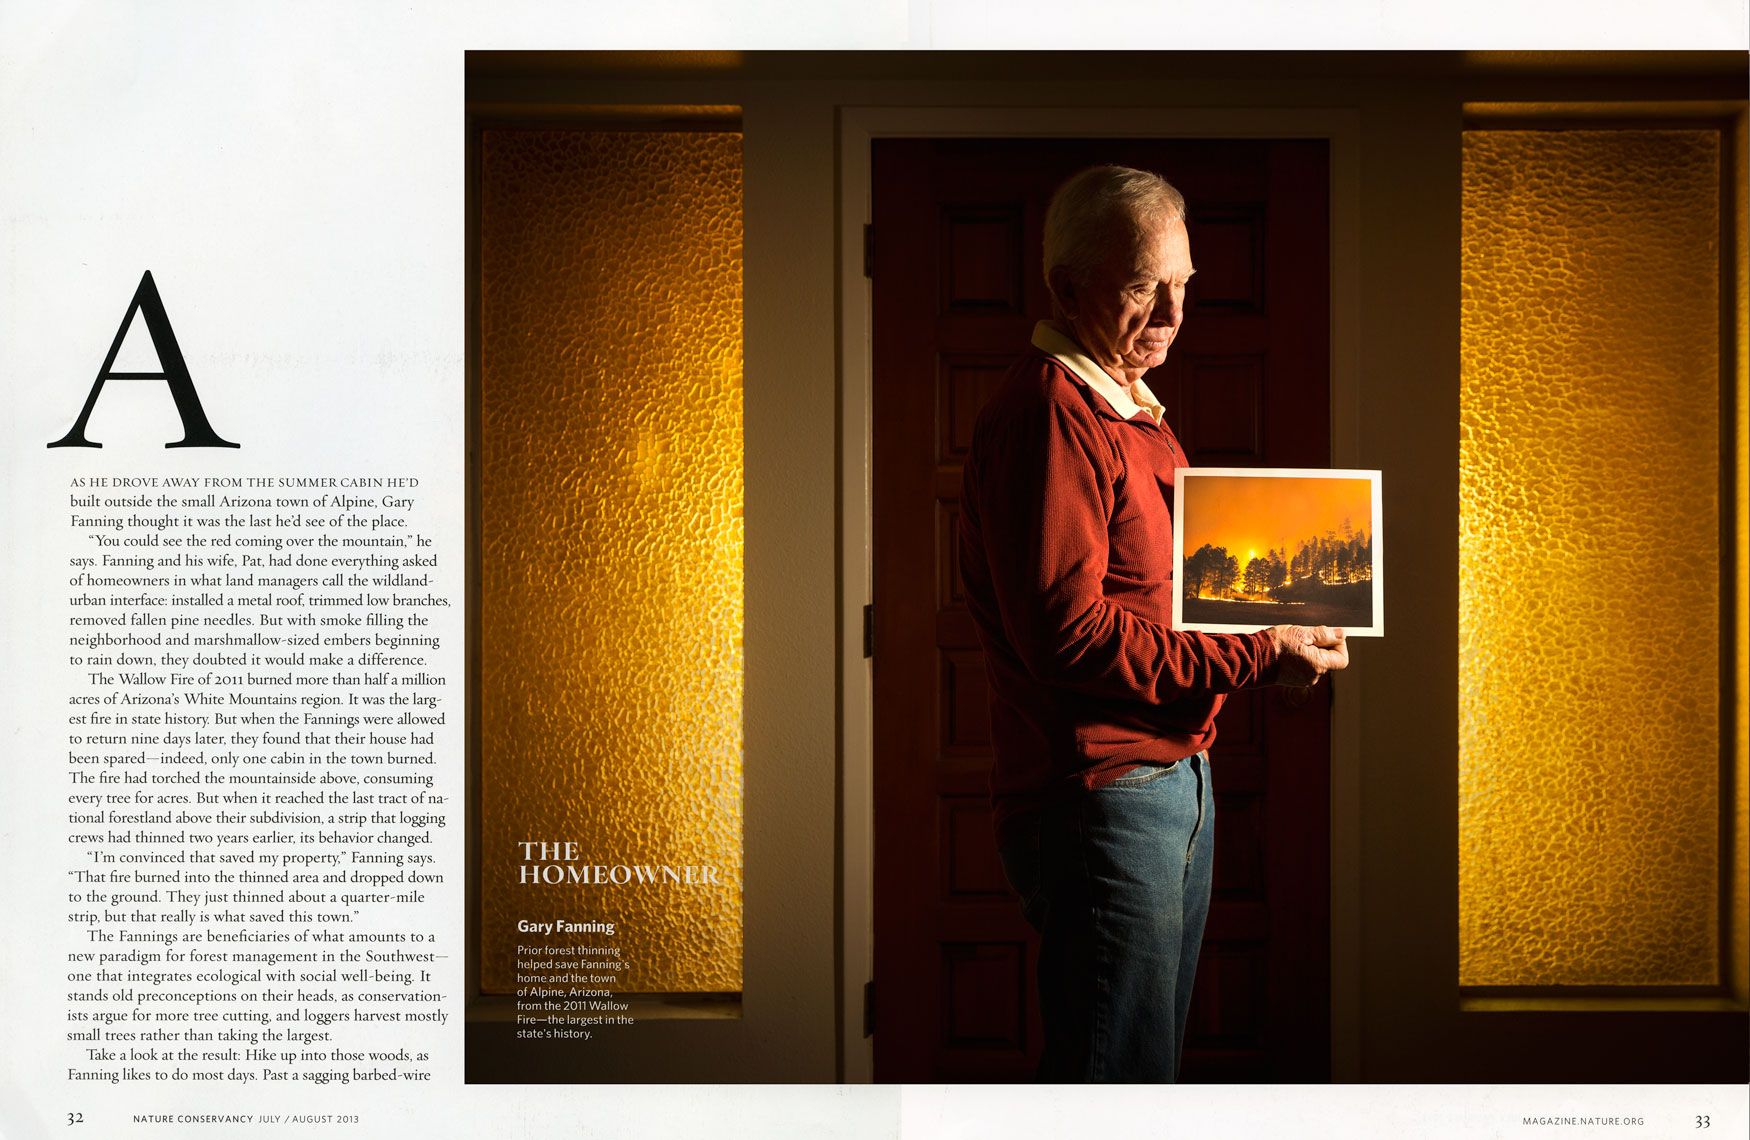 Nature Conservancy: The Homeowner. SPREAD 1: GARY FANNING